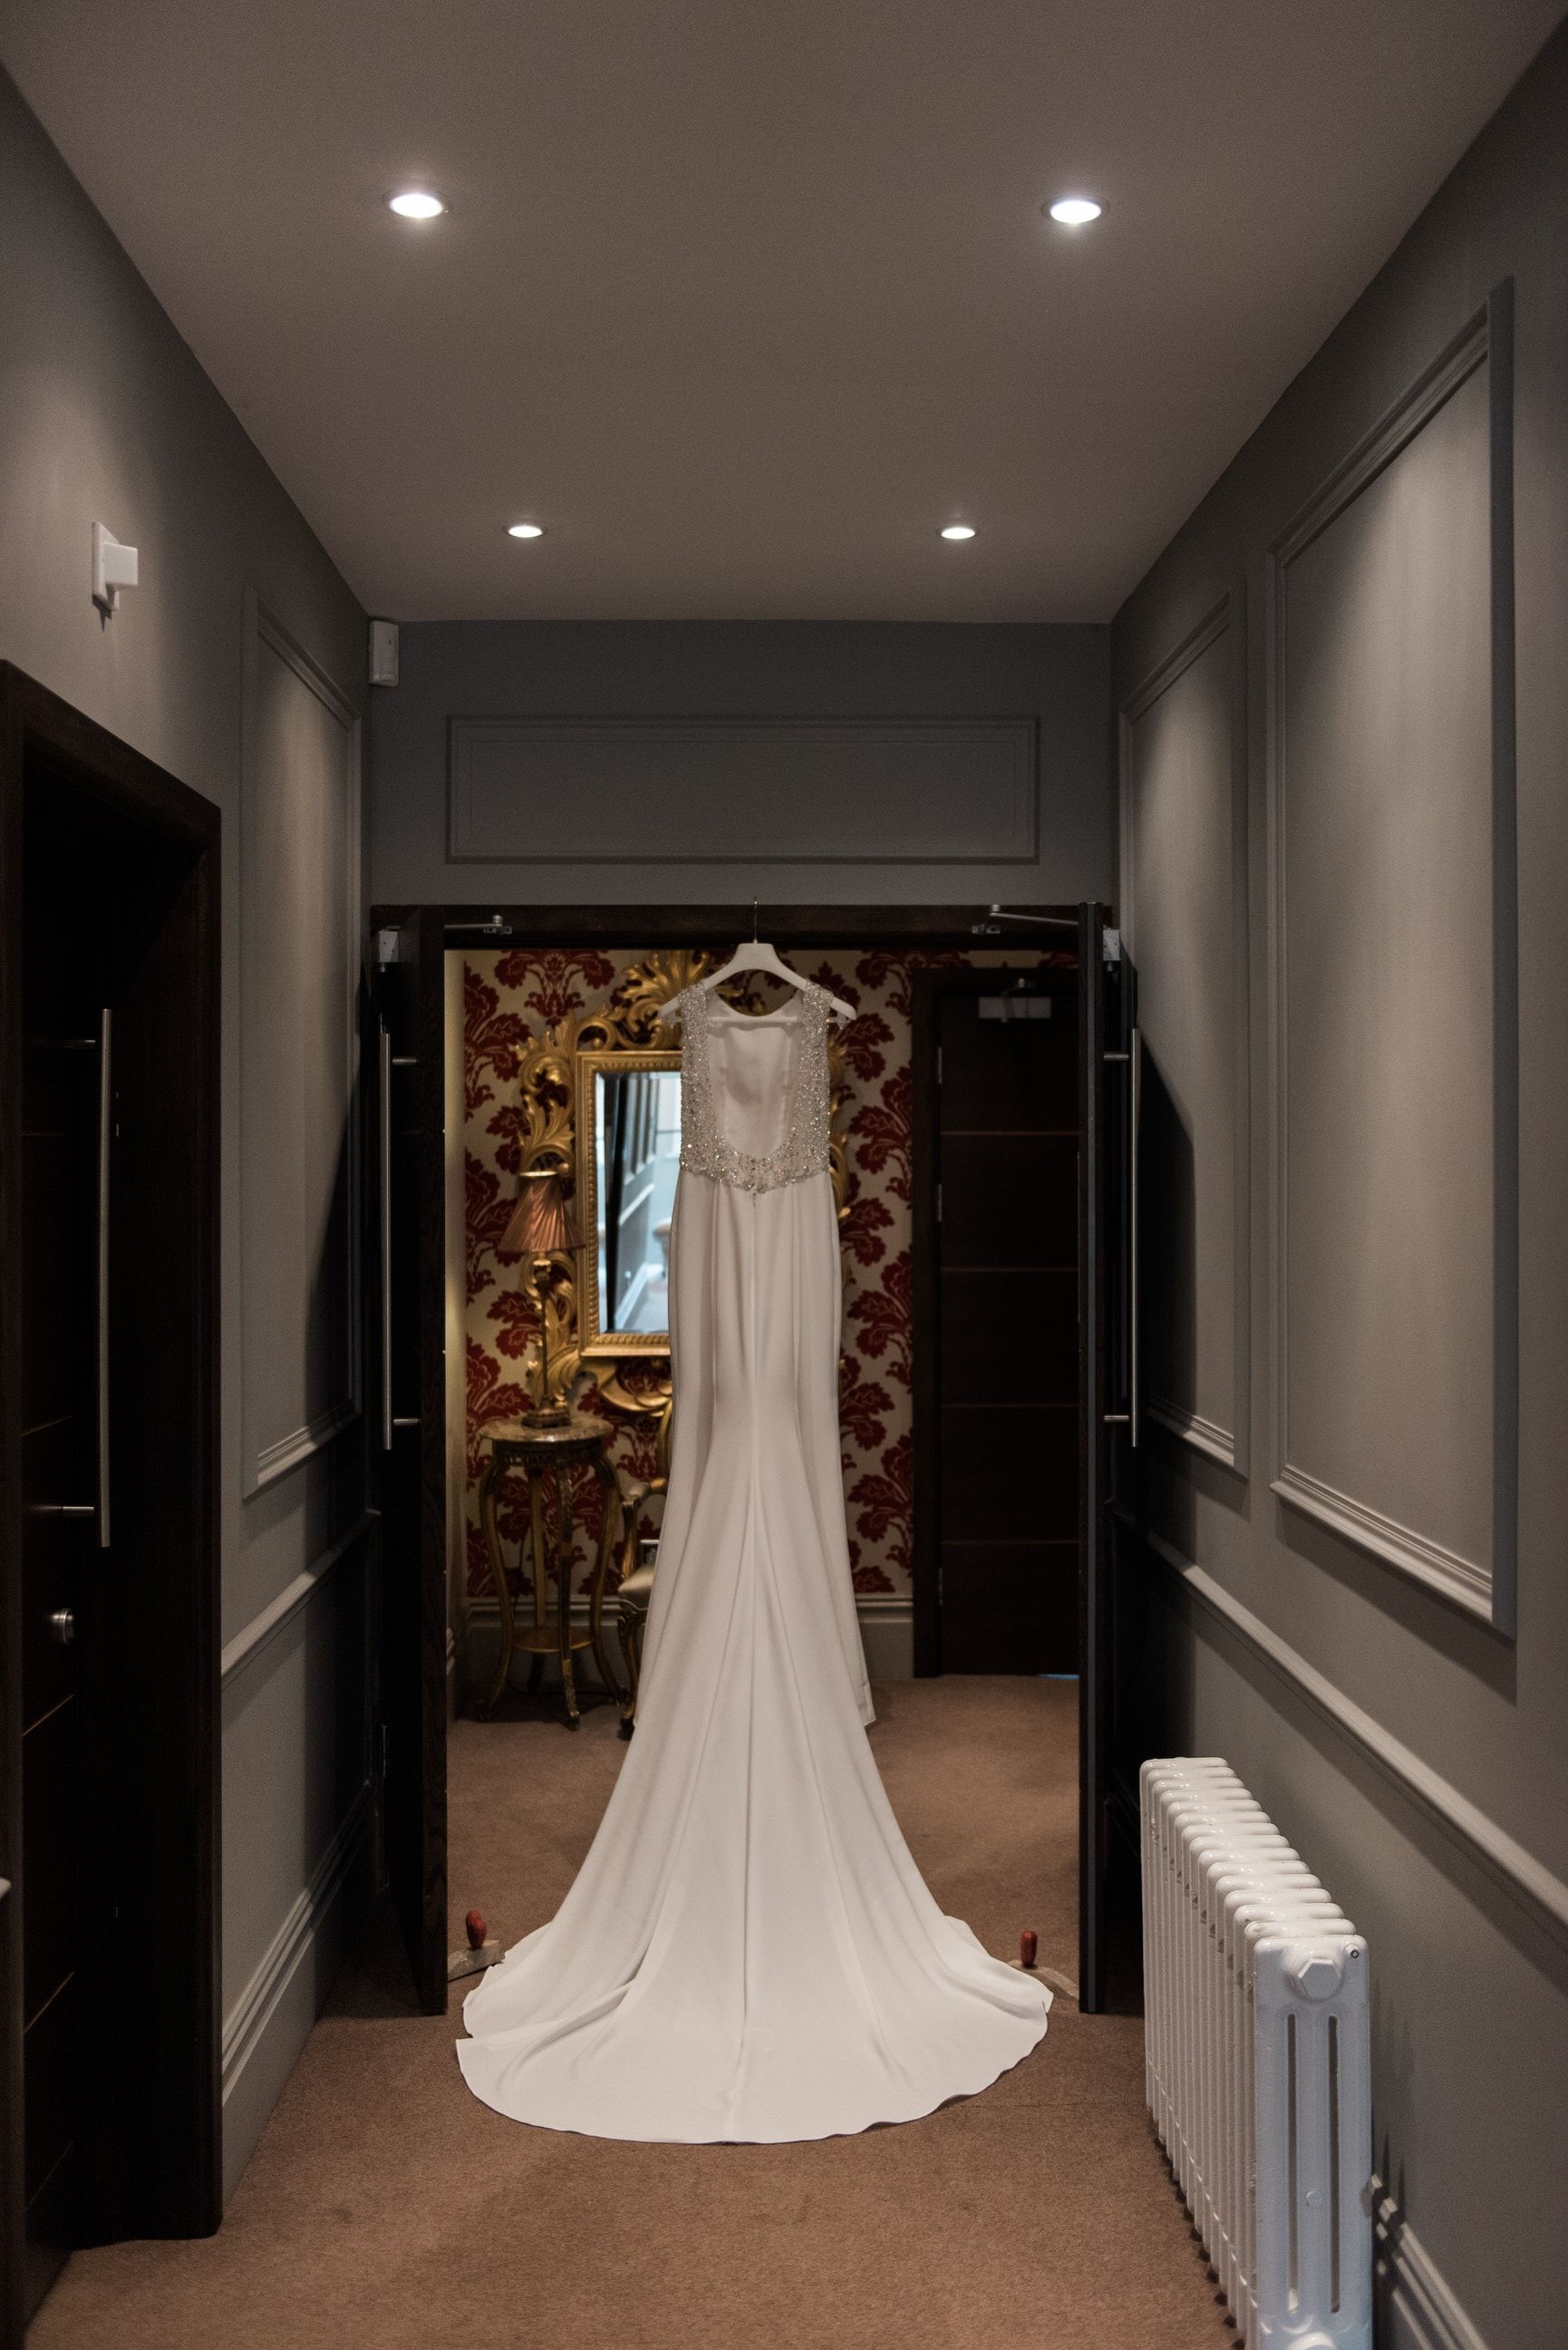 Pronovias wedding dress hung in doorway